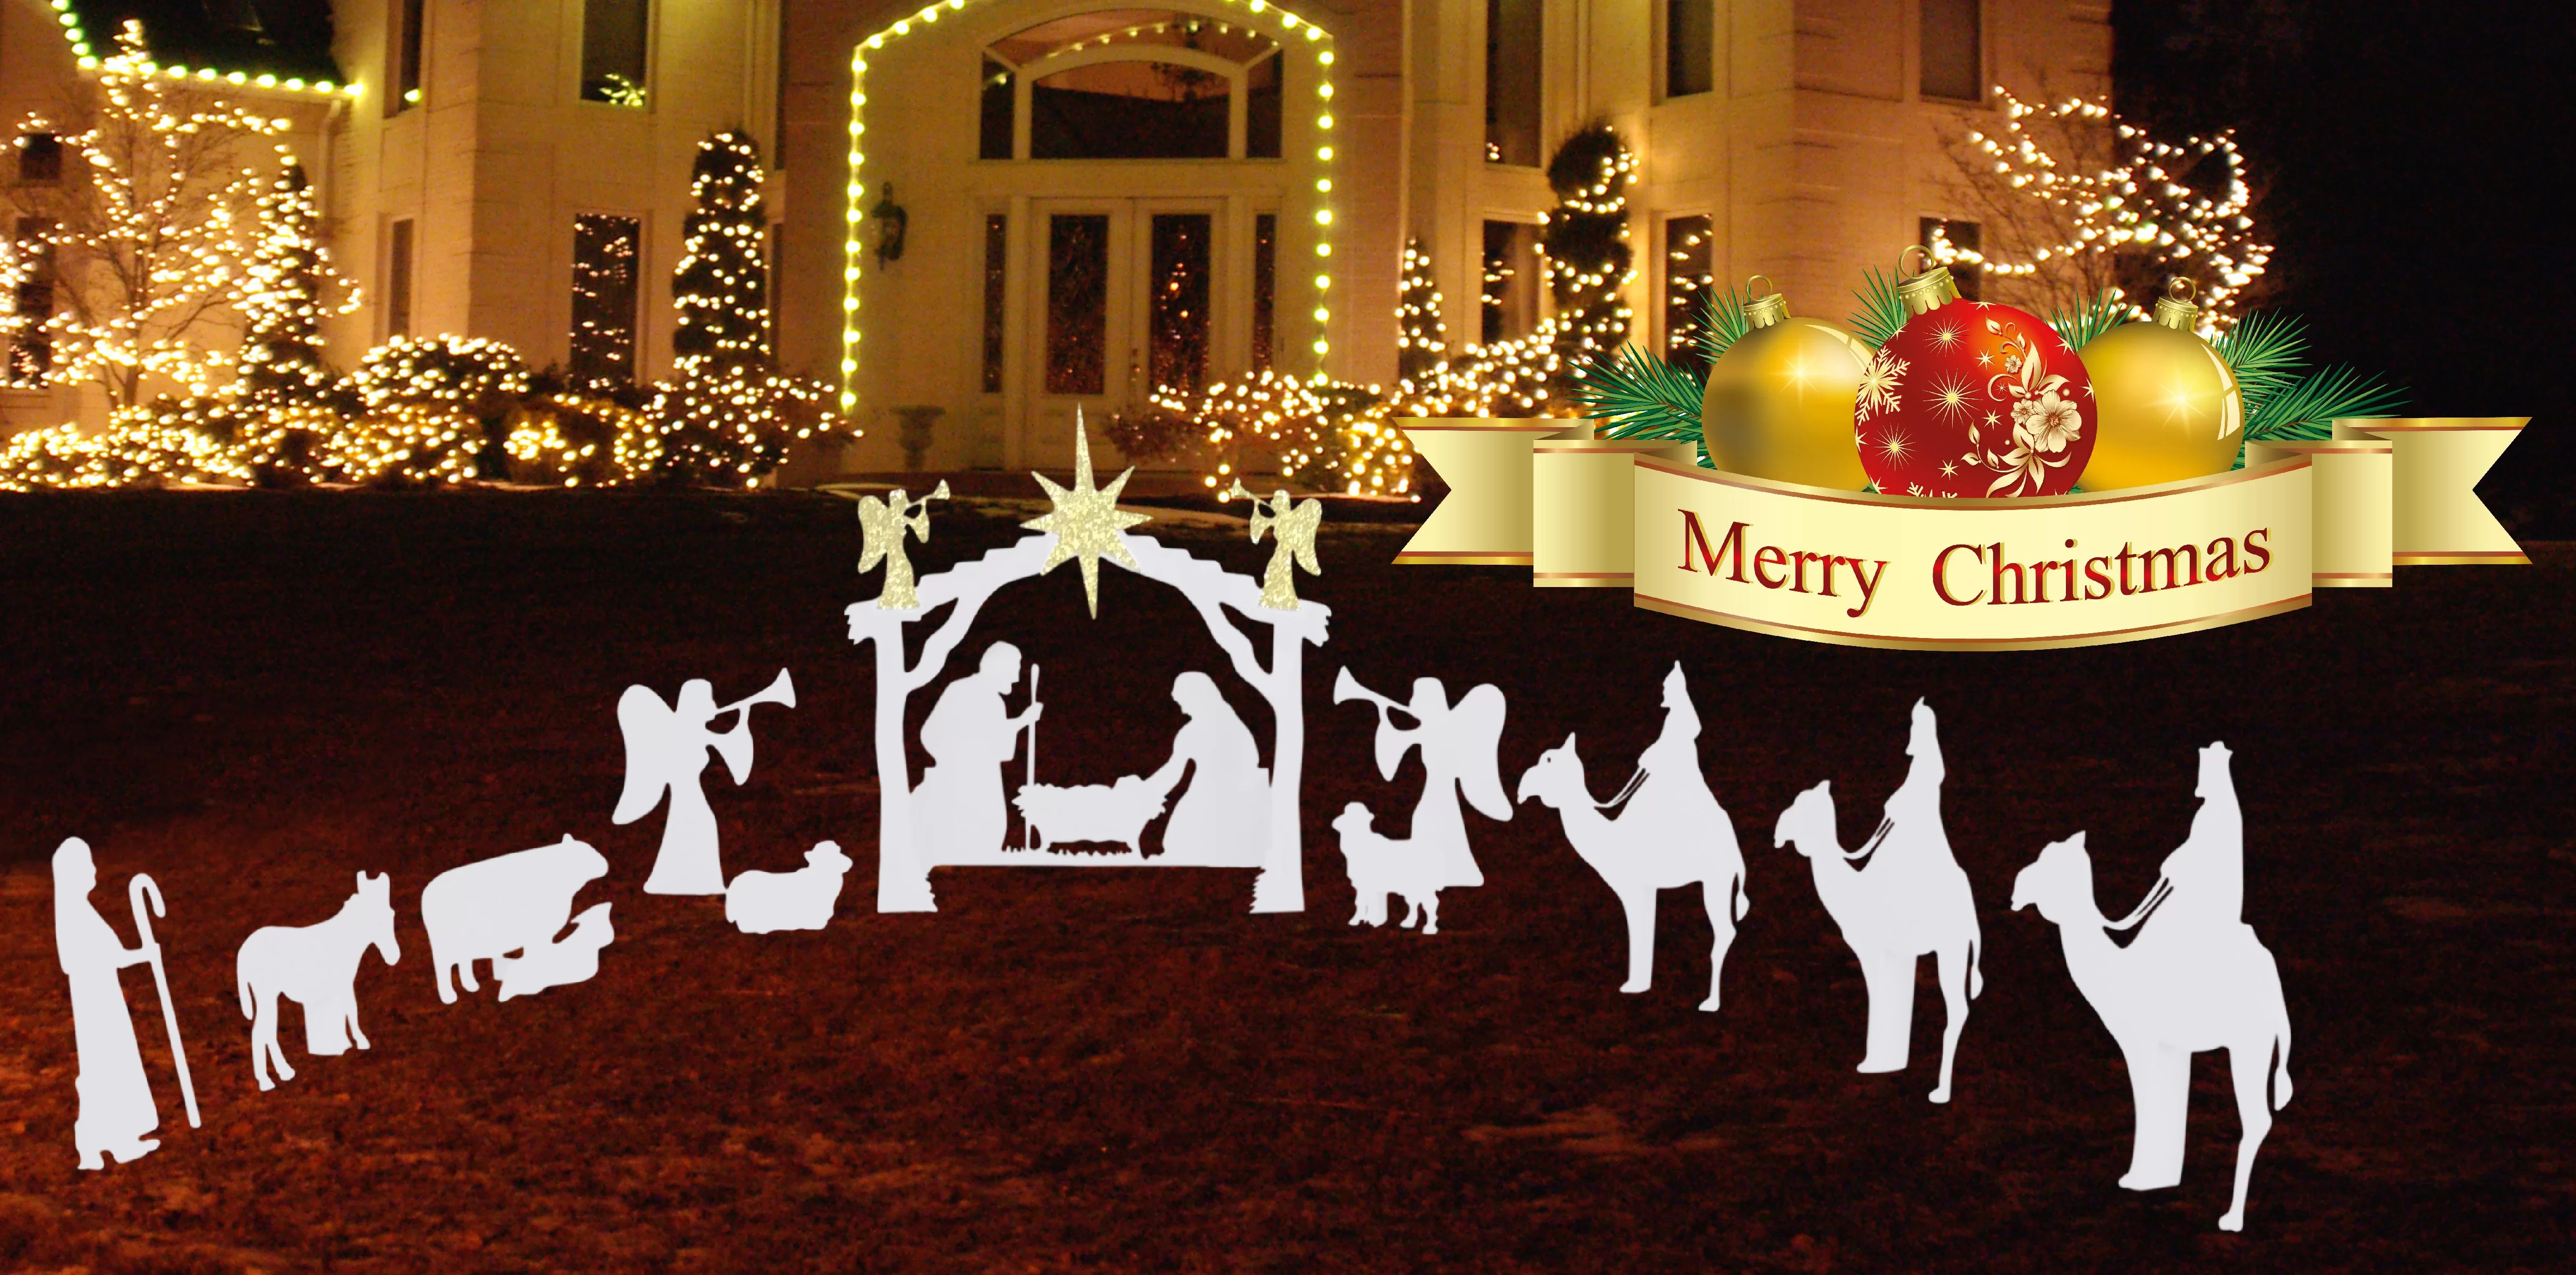 Religious Christmas Outdoor Decorations